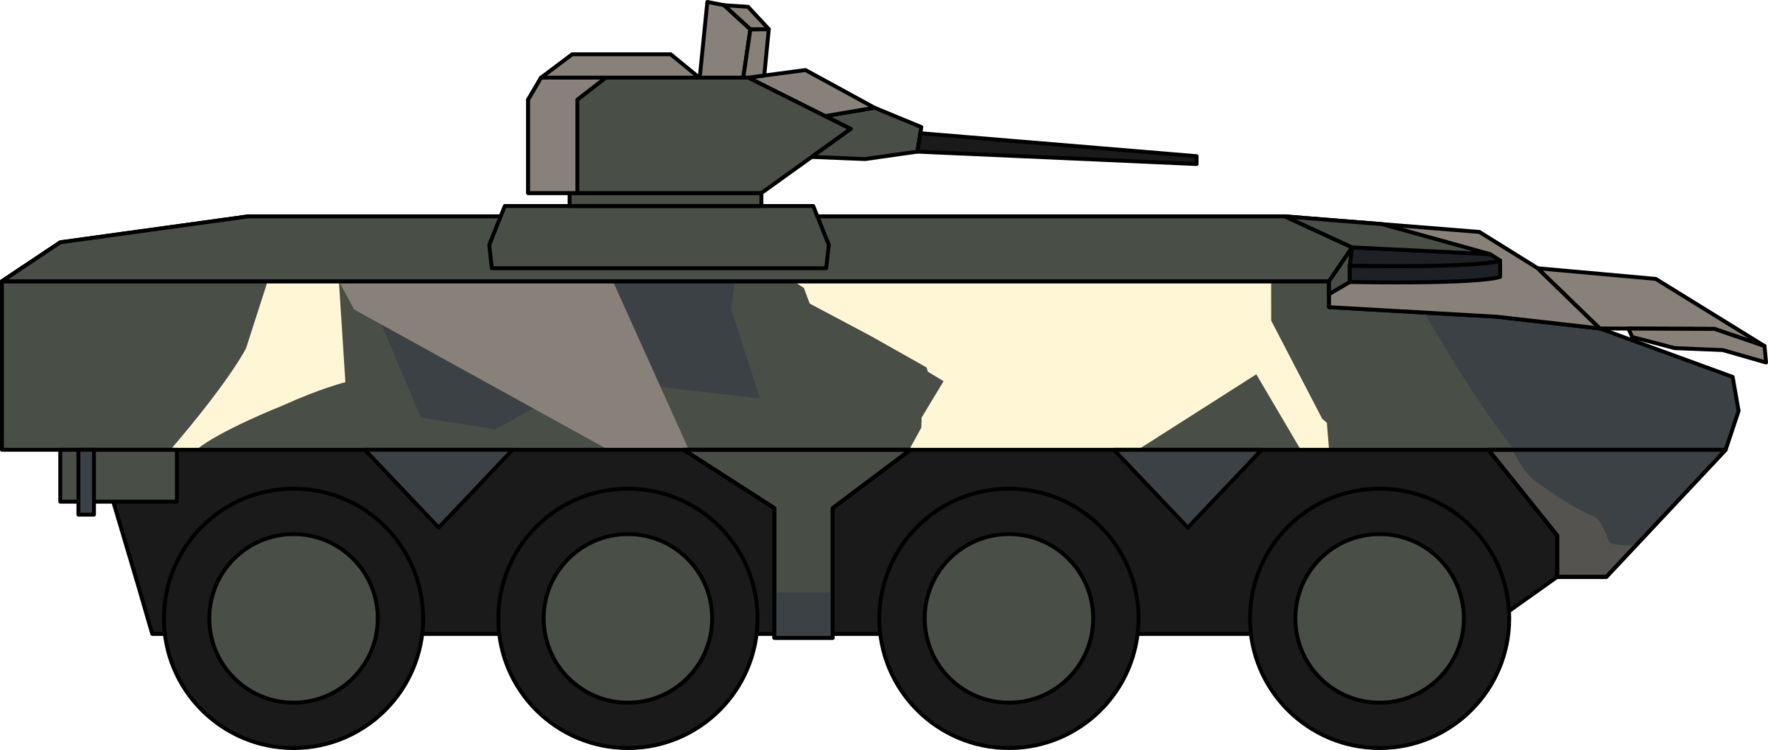 Tank,Military Vehicle,Weapon